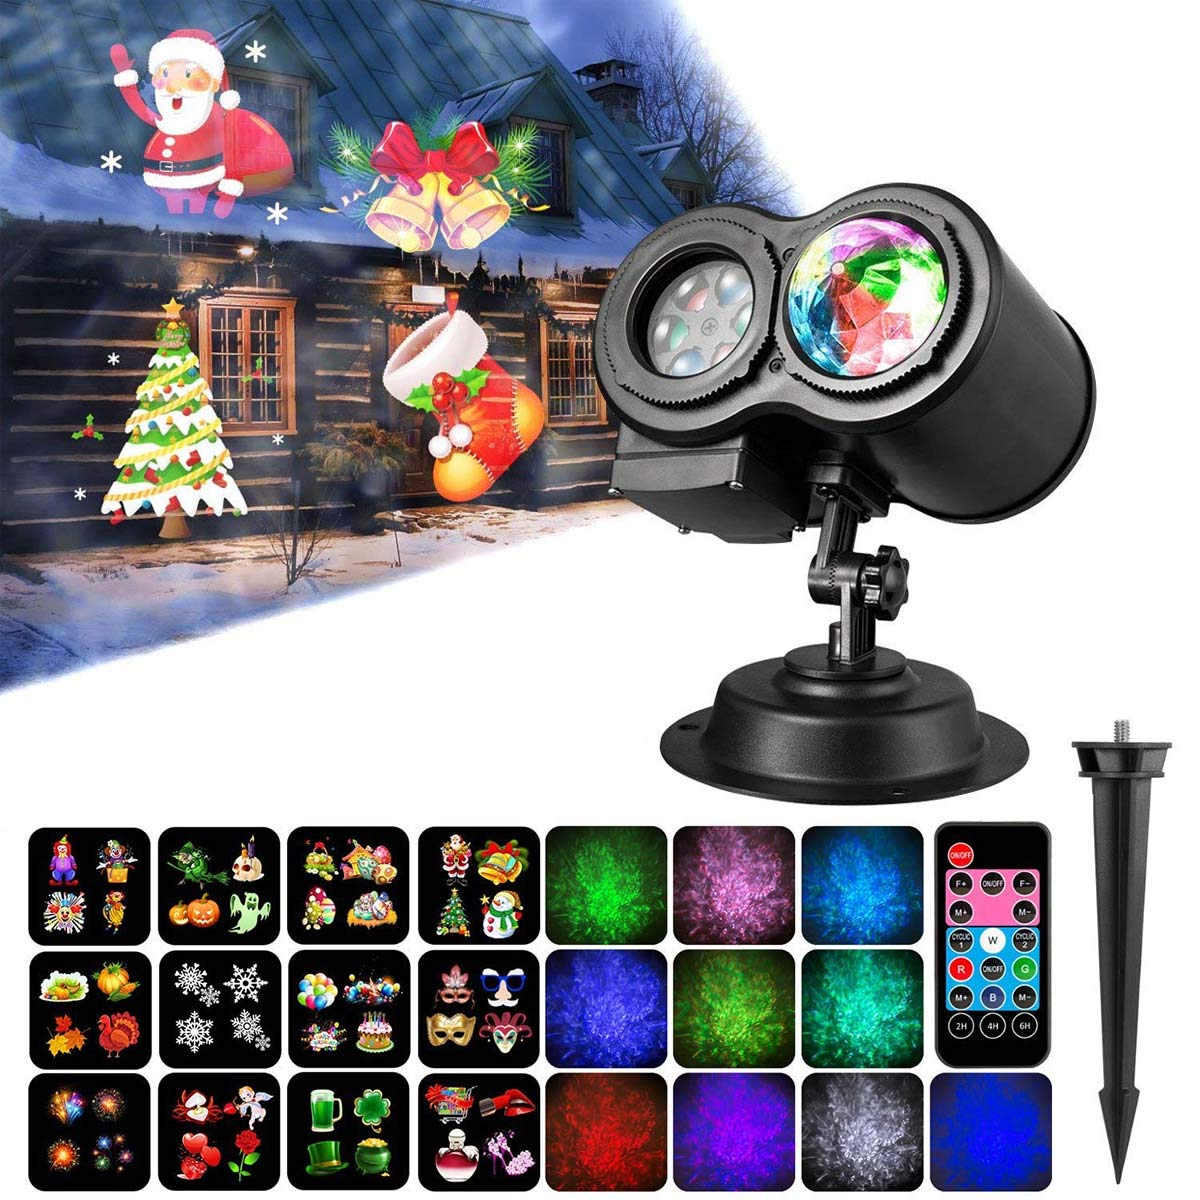 2018 New Version 2-IN-1 Christmas Halloween Projector Lights, Moving Patterns+ Ocean Wave LED Projector Lights with 12 Slides and Remote Controller Indoor Outdoor Holiday Lights for Halloween Xmas Home Birthday Party Garden Landscape Decorations HowiseAcc